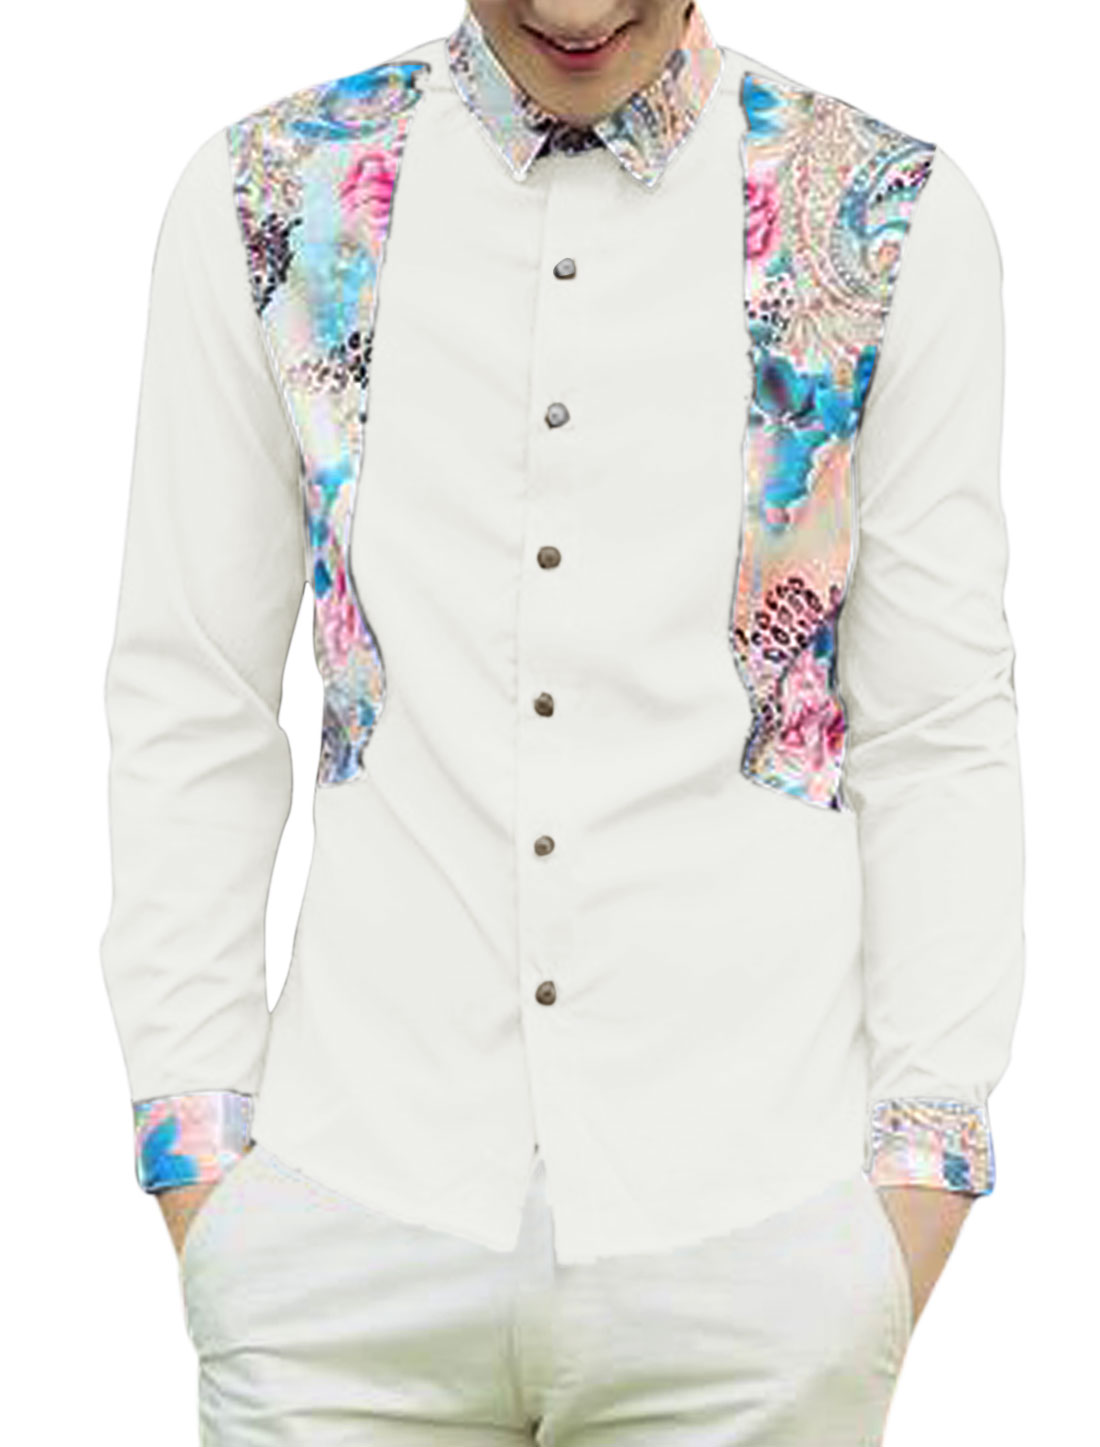 Men Flower Pattern Long Sleeves Button Down Casual Shirt White S